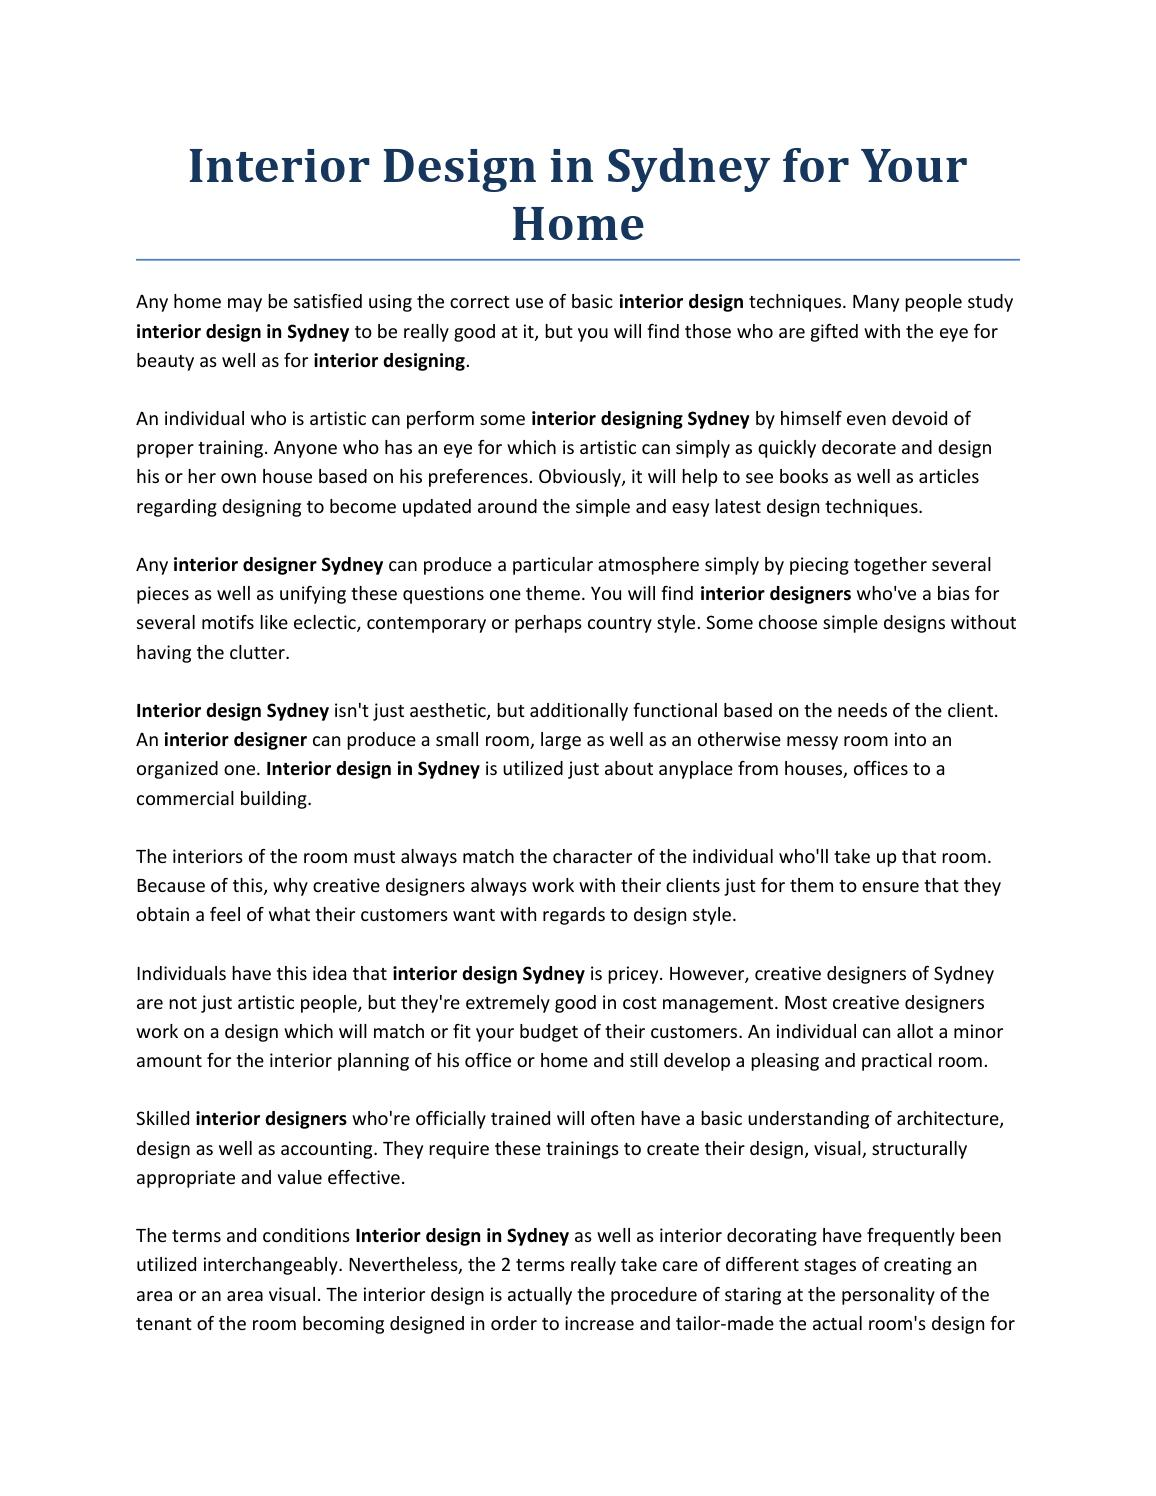 Interior design questions to ask your client home design for Interior design questions